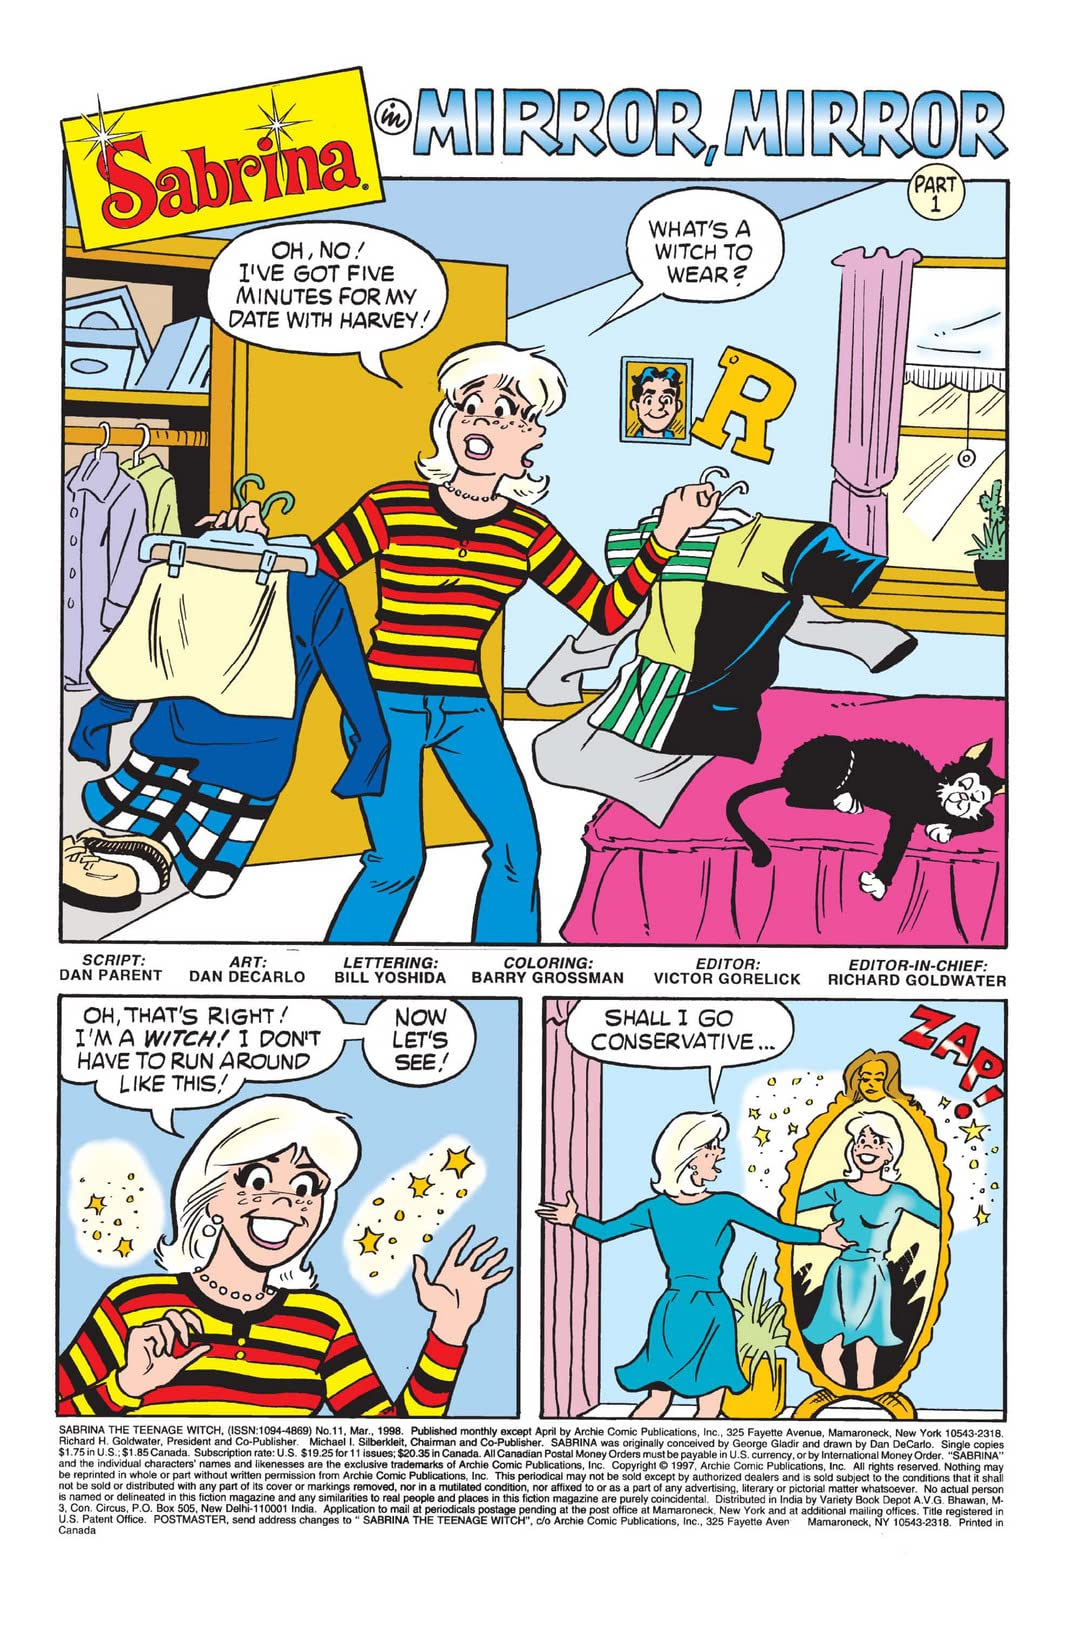 Sabrina the Teenage Witch #11